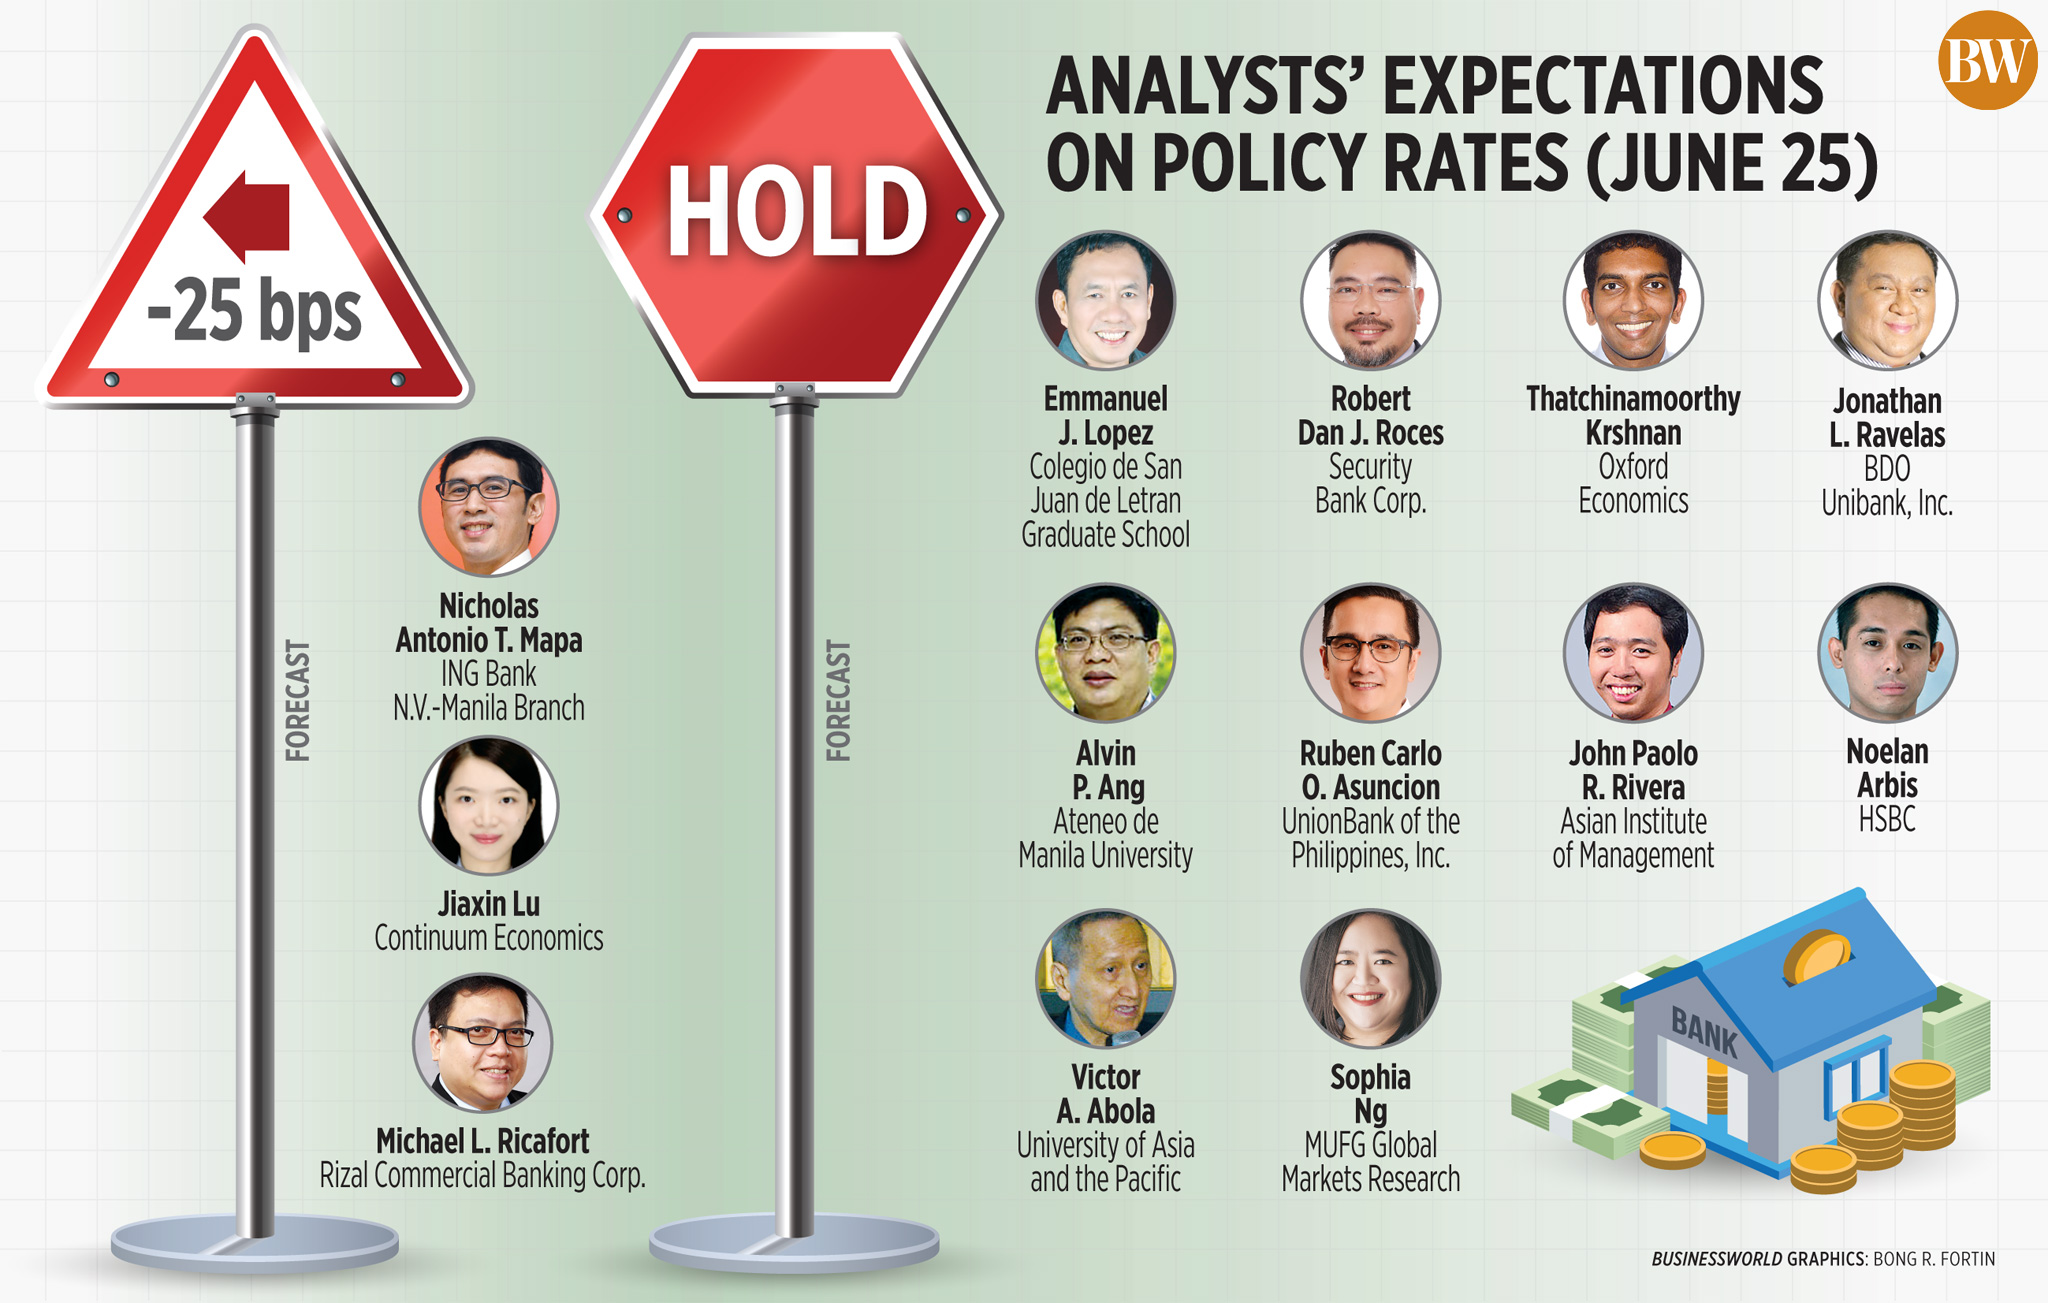 Analysts' expectations on policy rates (June 25)